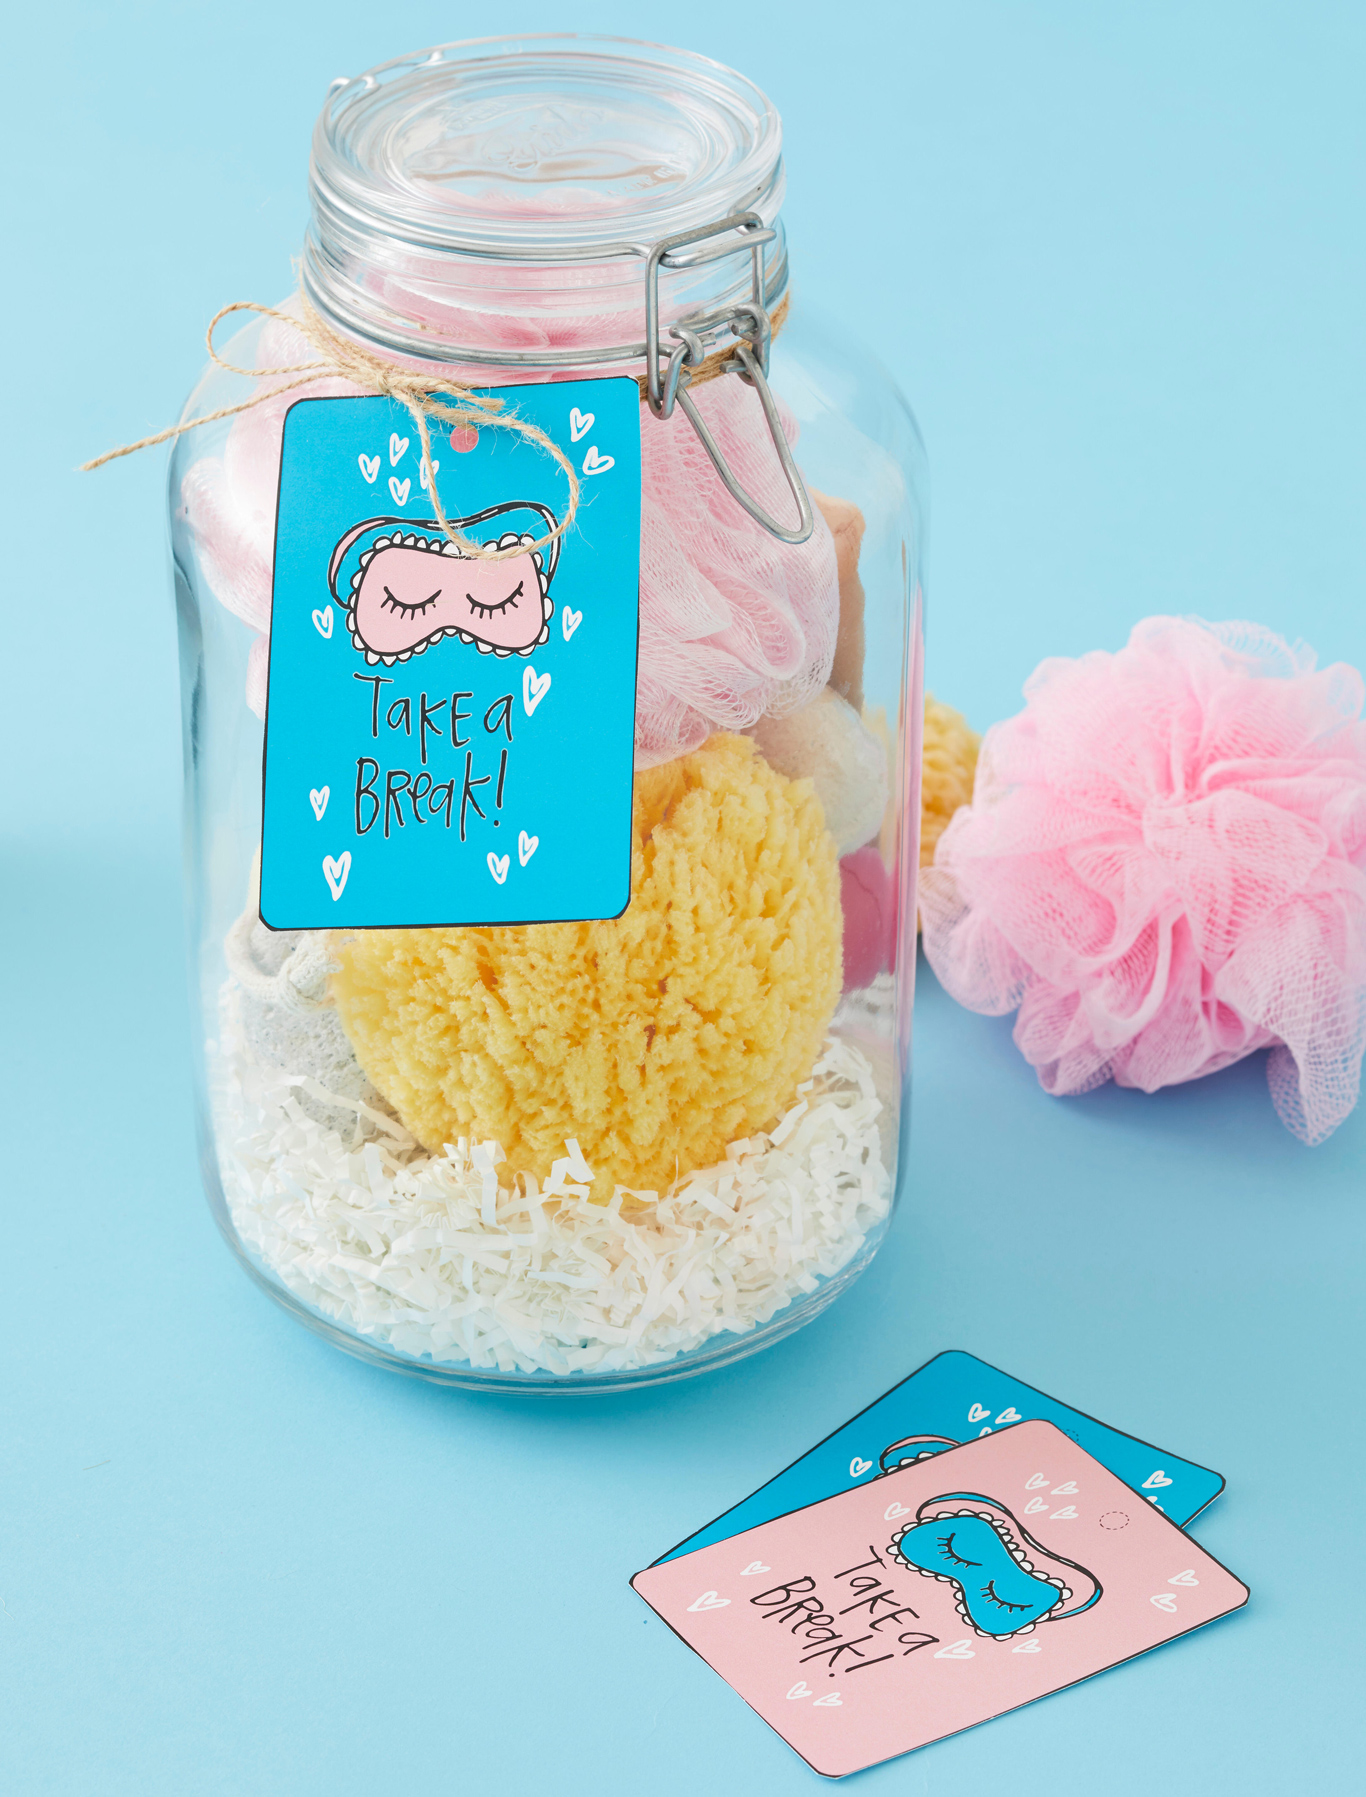 spa break gift jar with tags